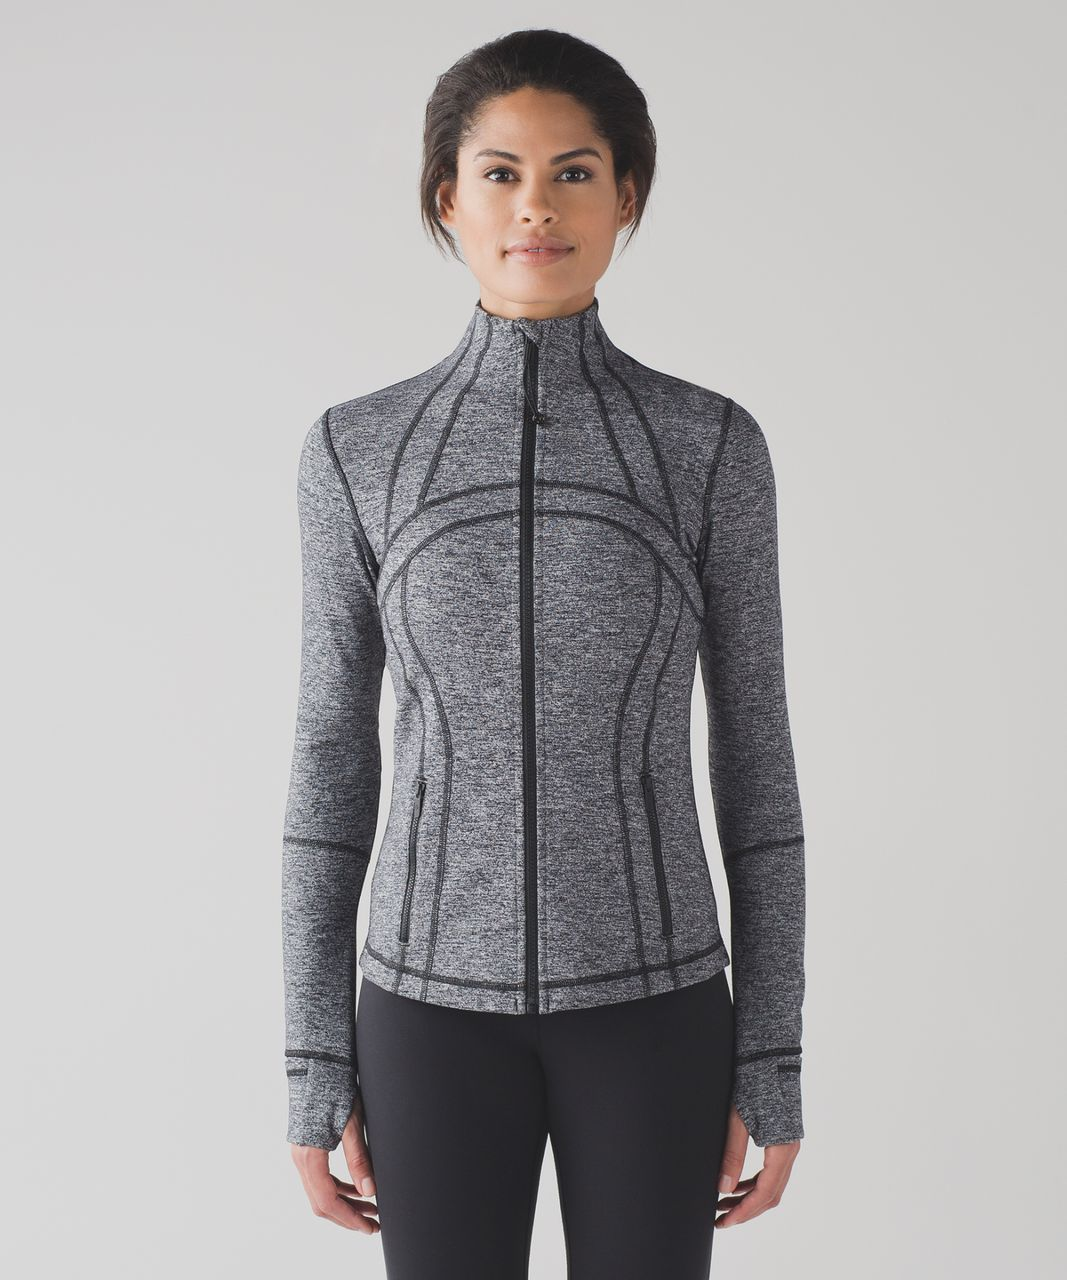 Lululemon Define Jacket - Heathered Black (First Release)